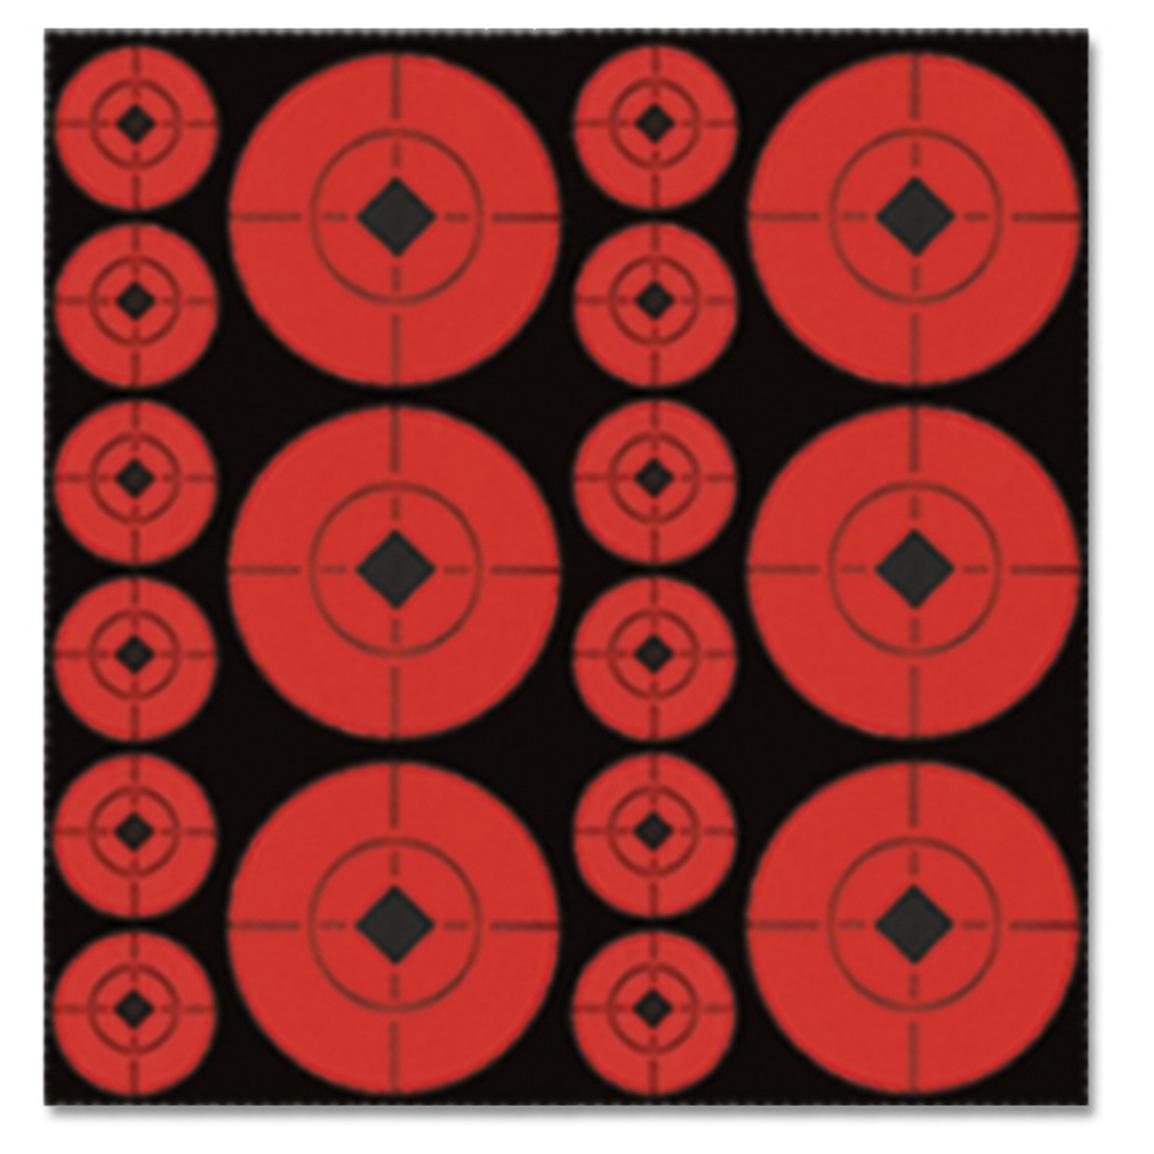 1000 Inch Target 2 Inch Round Target 1,000